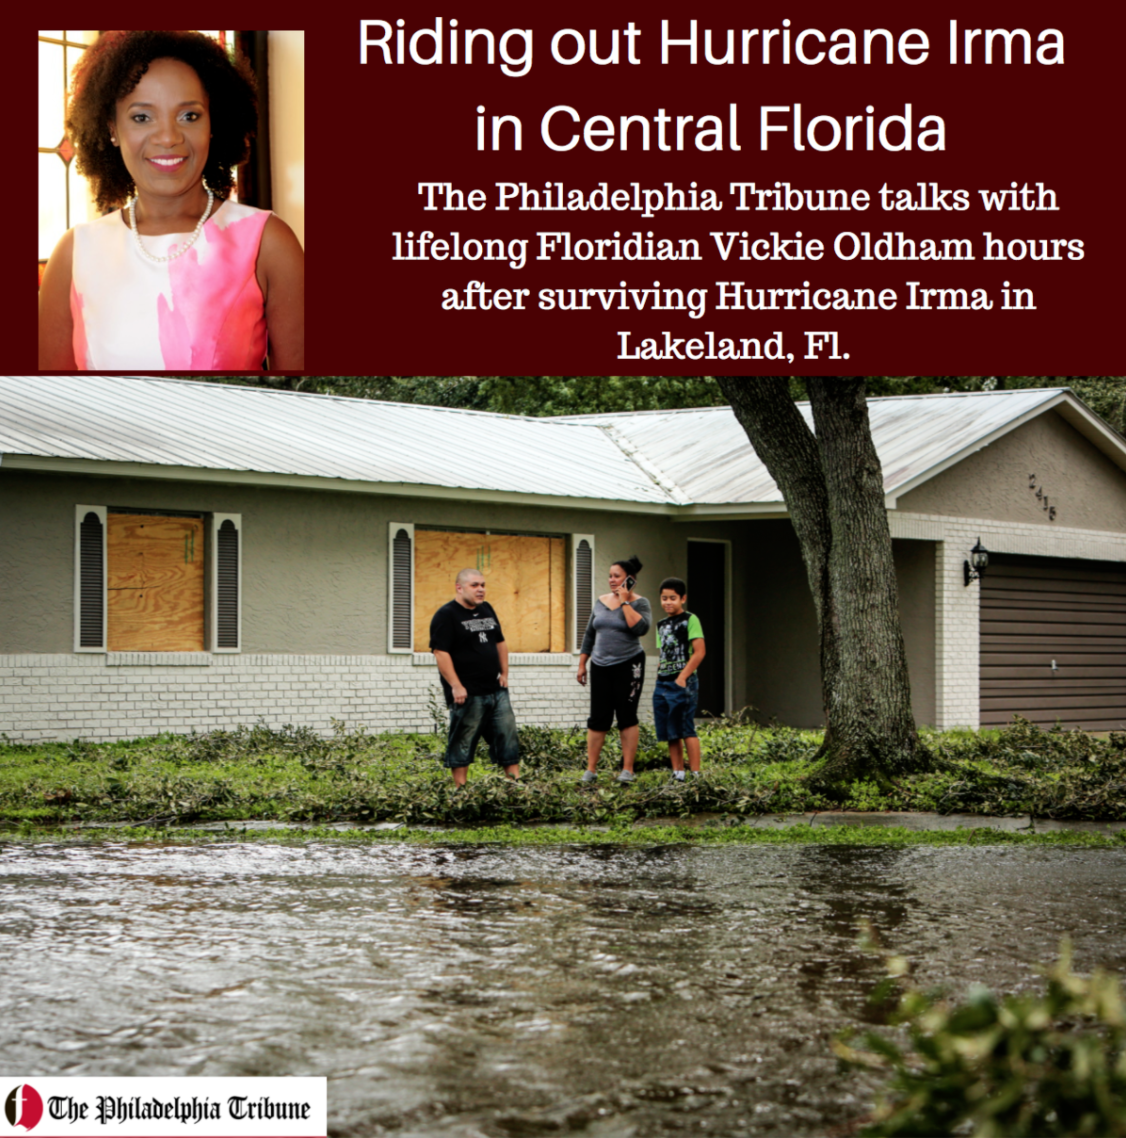 09/11/17: AUDIO: Riding out Hurricane Irma in Central Florida